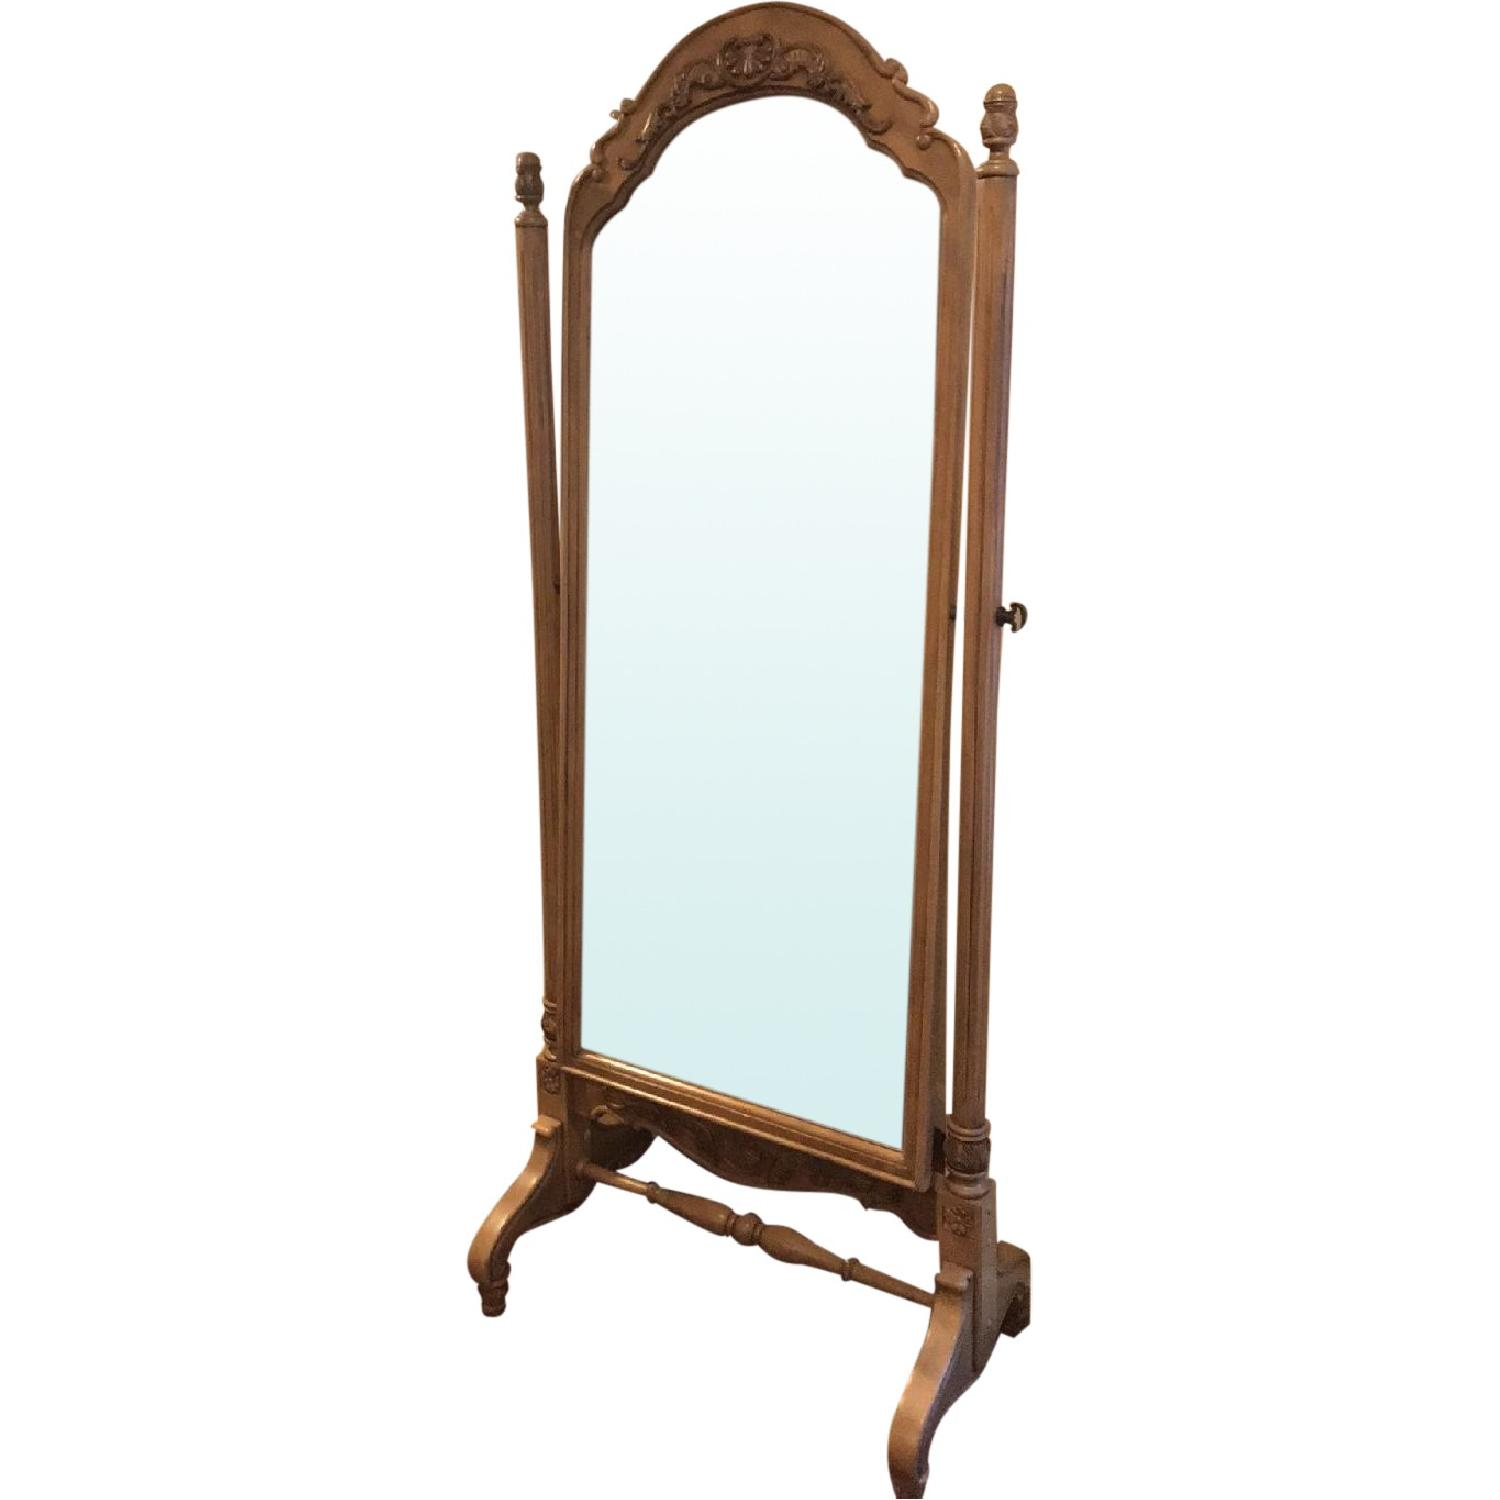 Antique French Mirror - image-0